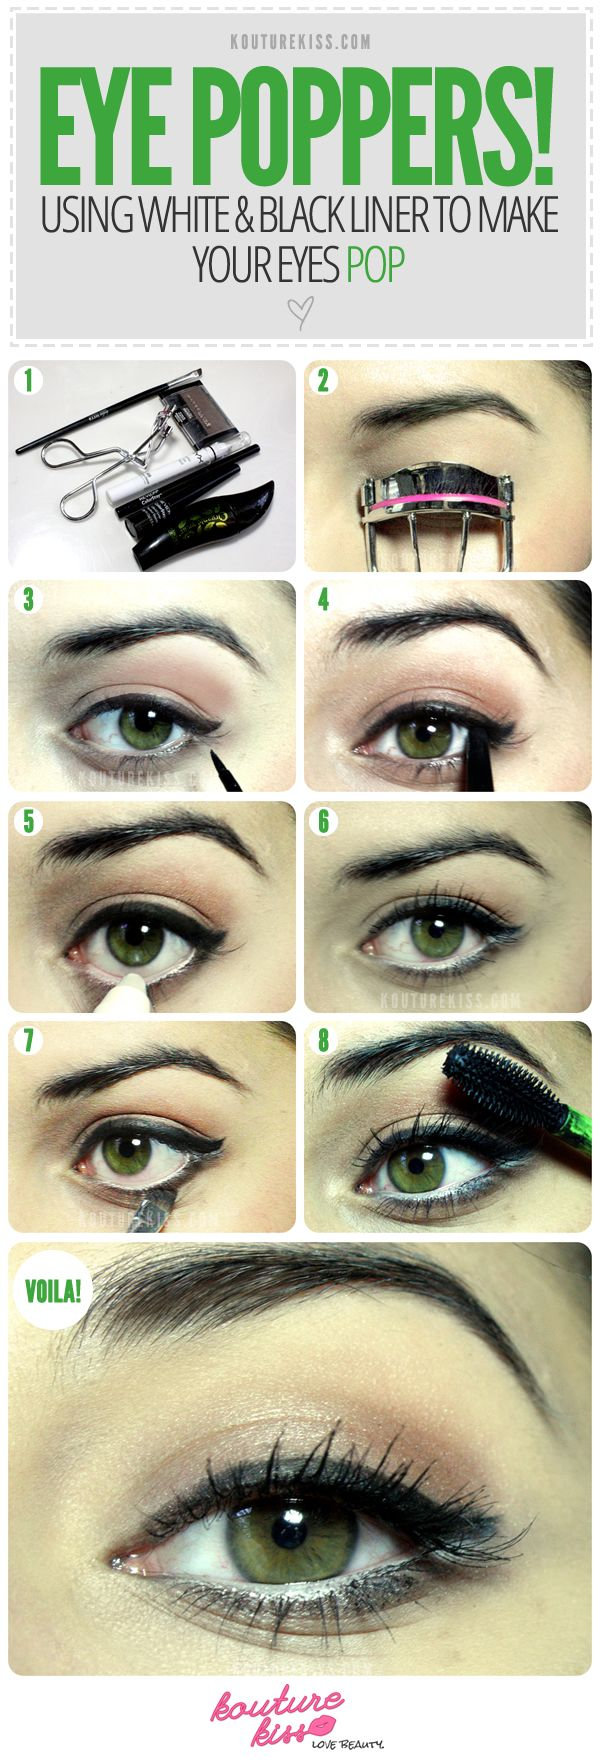 Who doesn't want bigger looking eyes? Unfortunately a lot of women don't apply eyeliner correctly, making their eyes appear smaller than they really are. The key is to make your top lash line appear thicker and the whites of your eyes seem larger. The purpose is to open up your beautiful eyes, not enclose them.